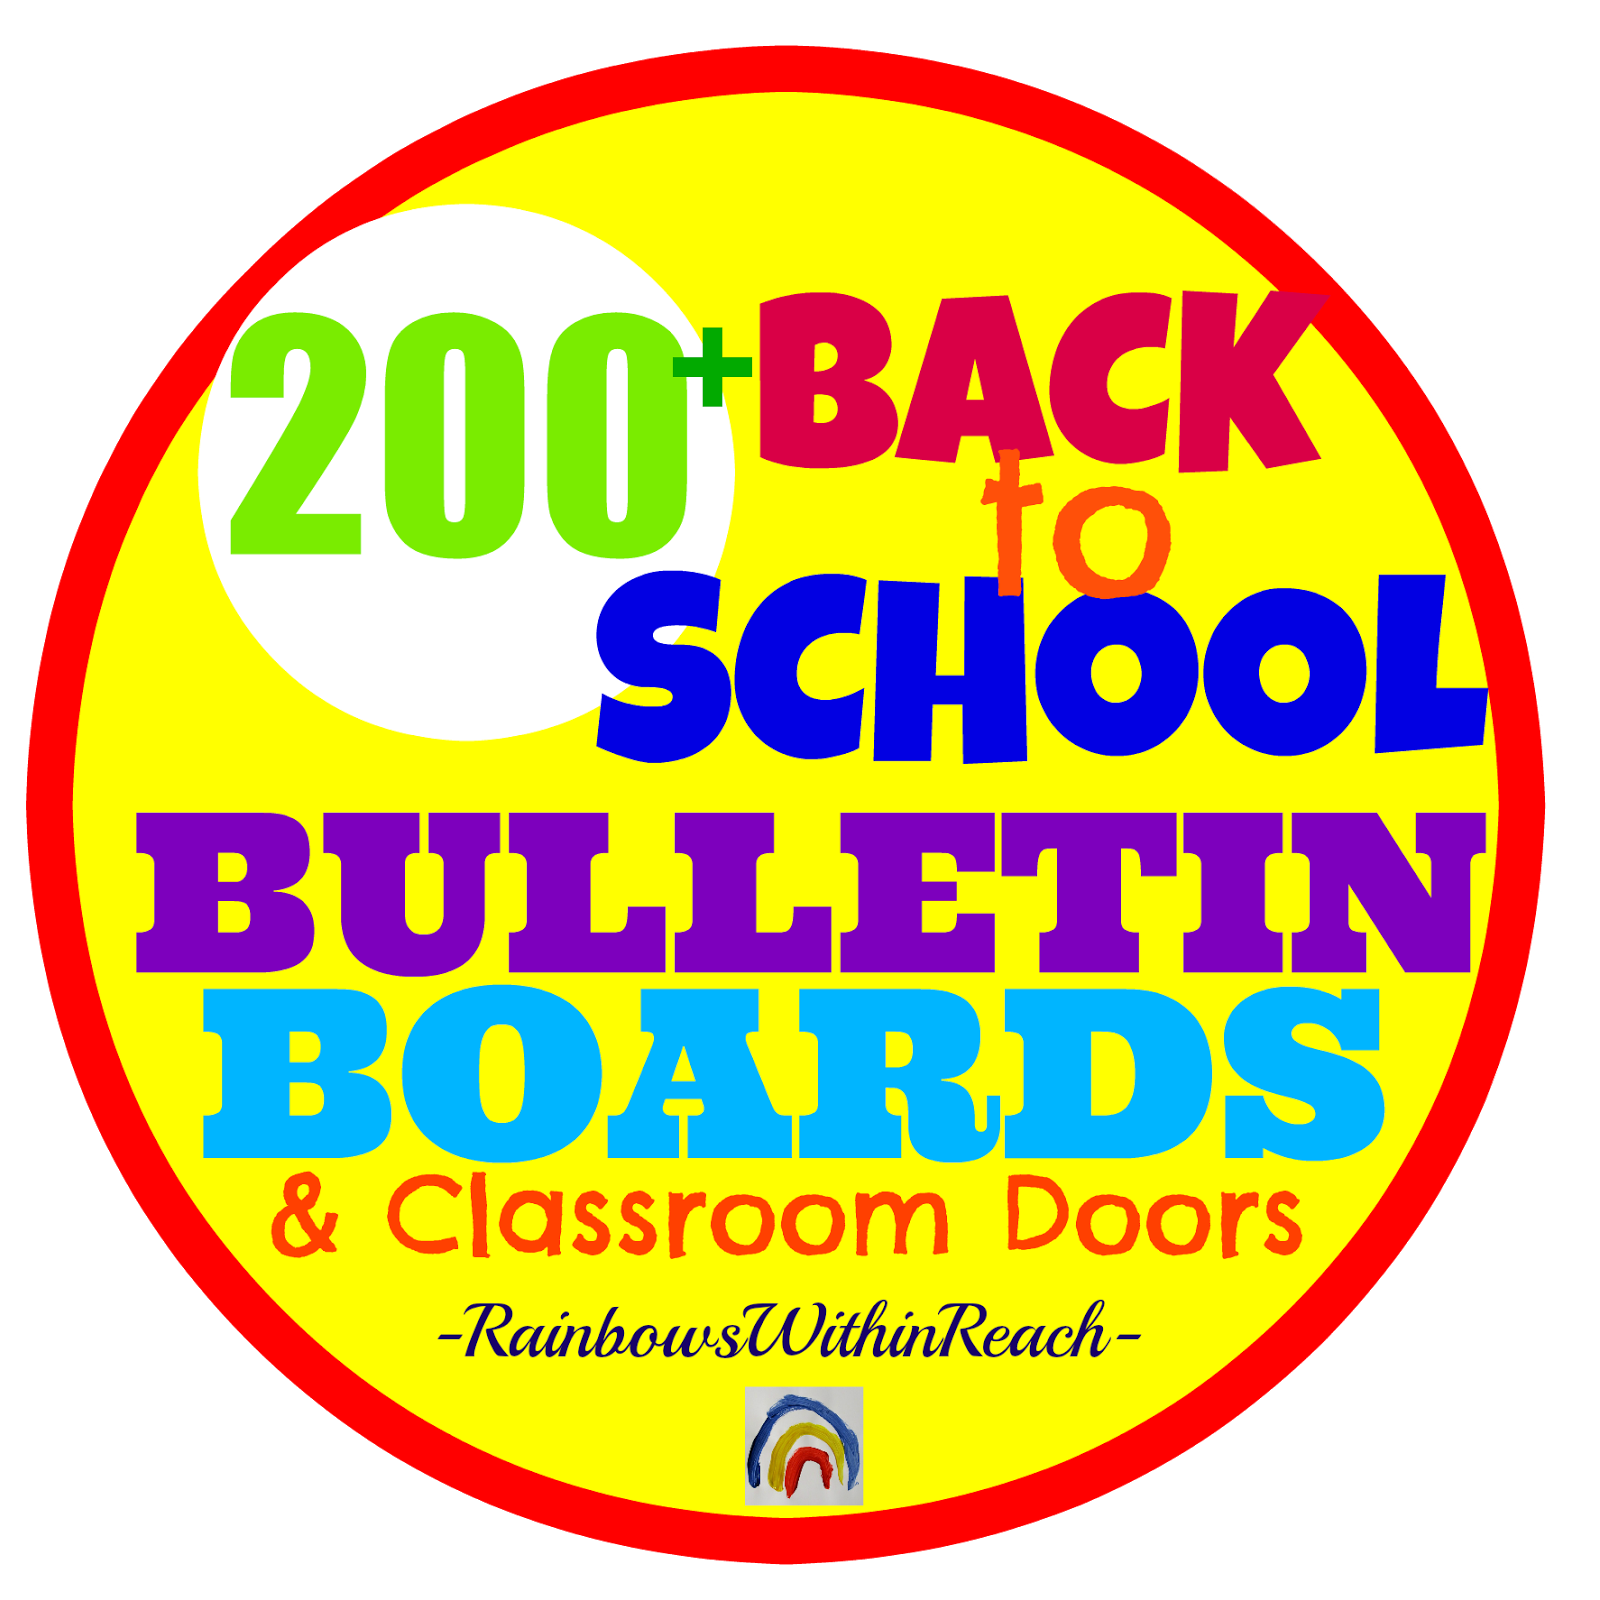 Back-to-School Bulletin Board Collection at RainbowsWIthinReach